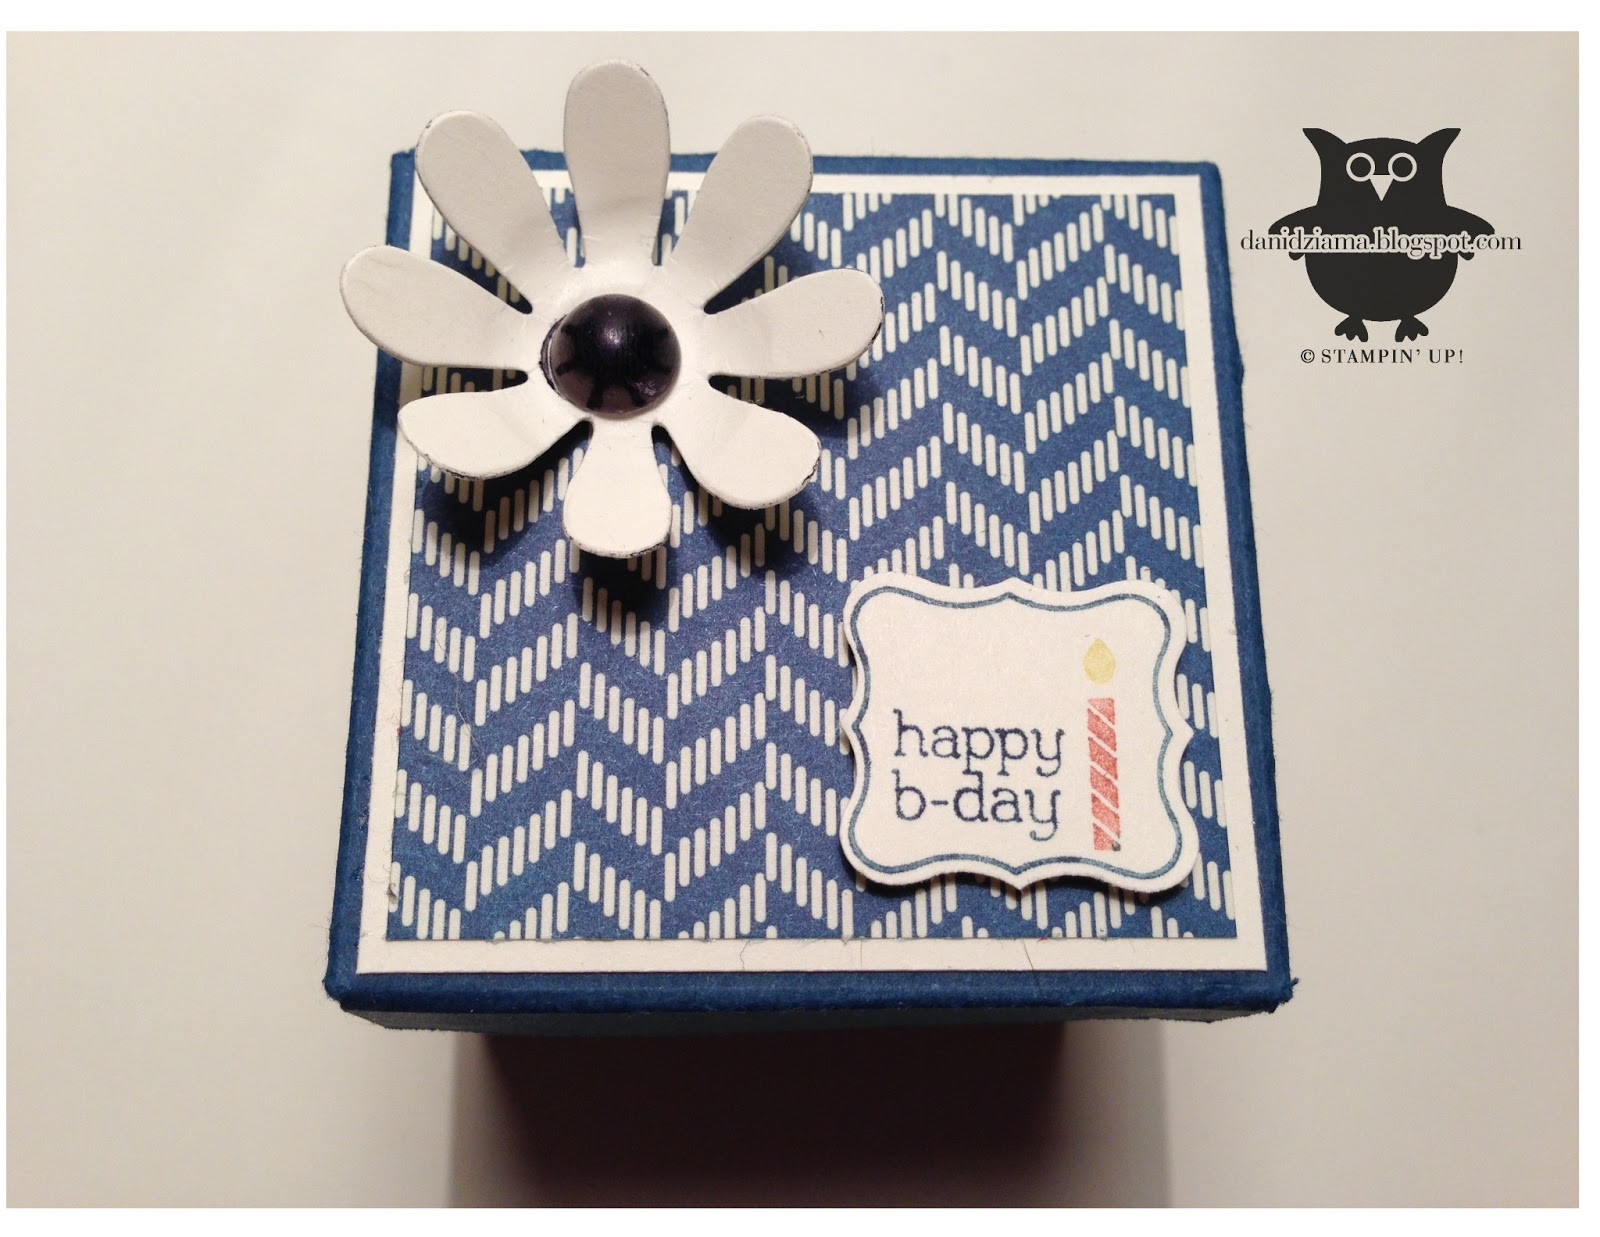 Danis Thoughtful Corner Mini Explosion box